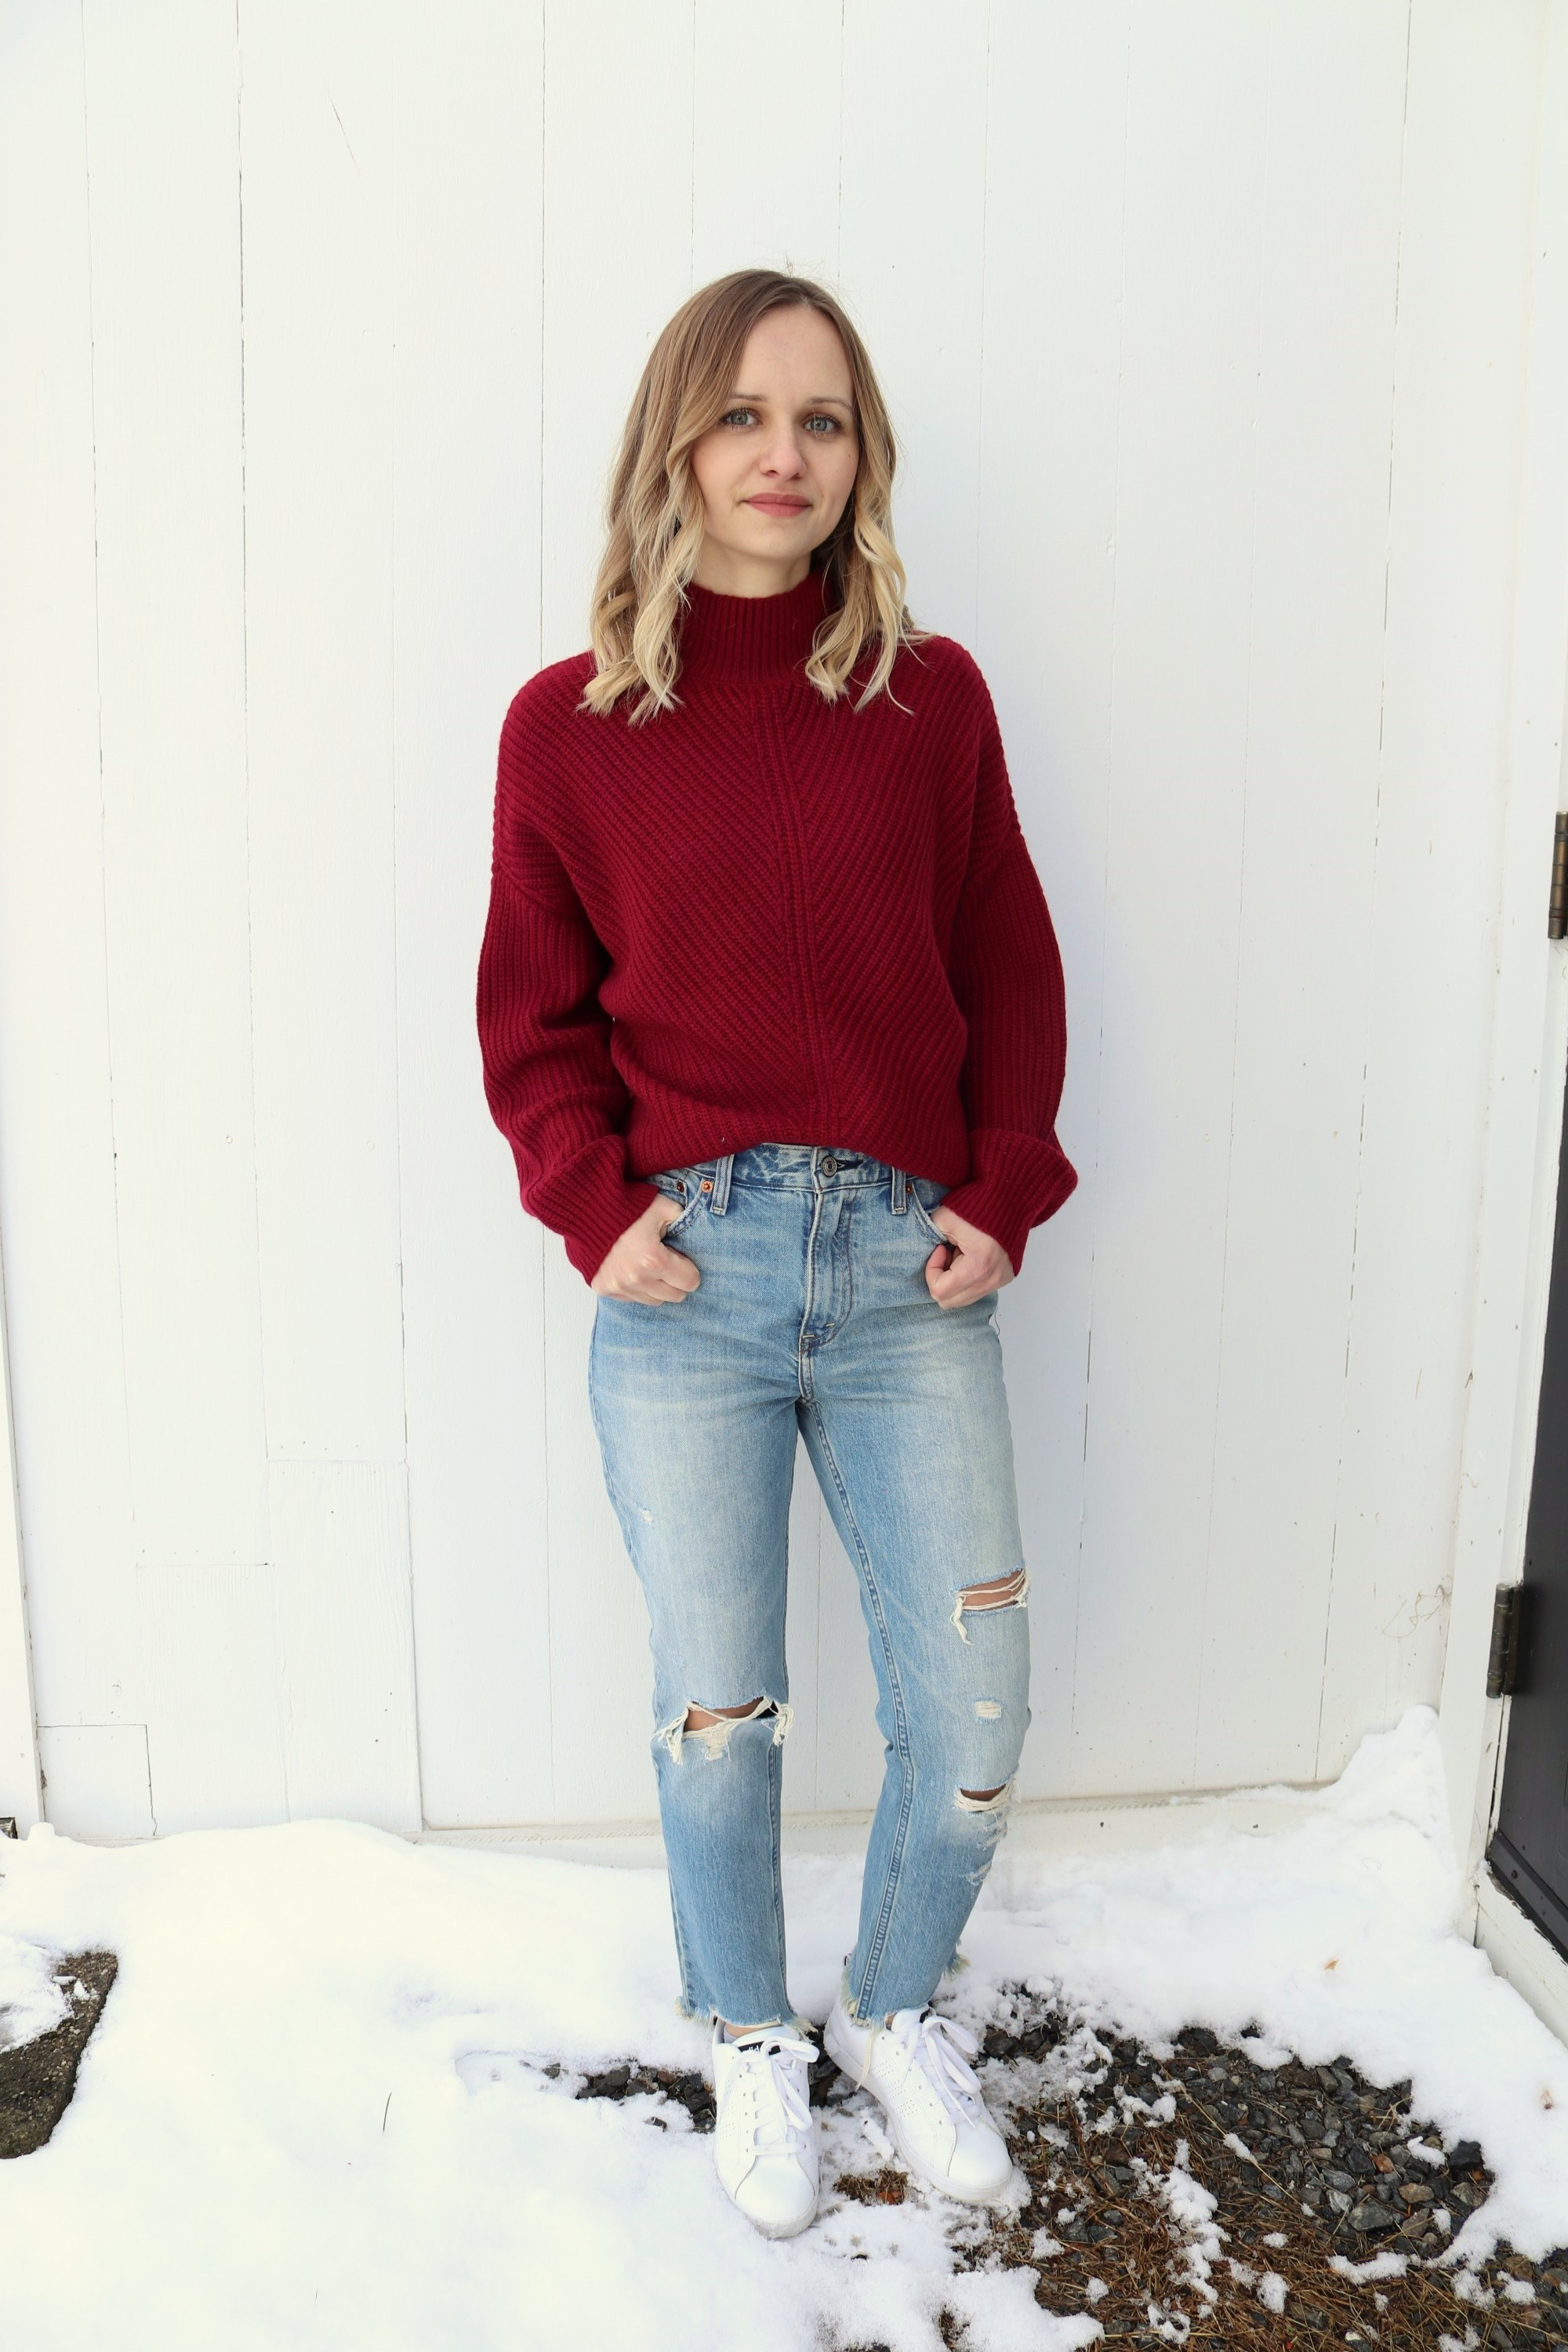 Abercrombie High Rise Girlfriend Jeans + Cropped Sweater | Little Things Olga